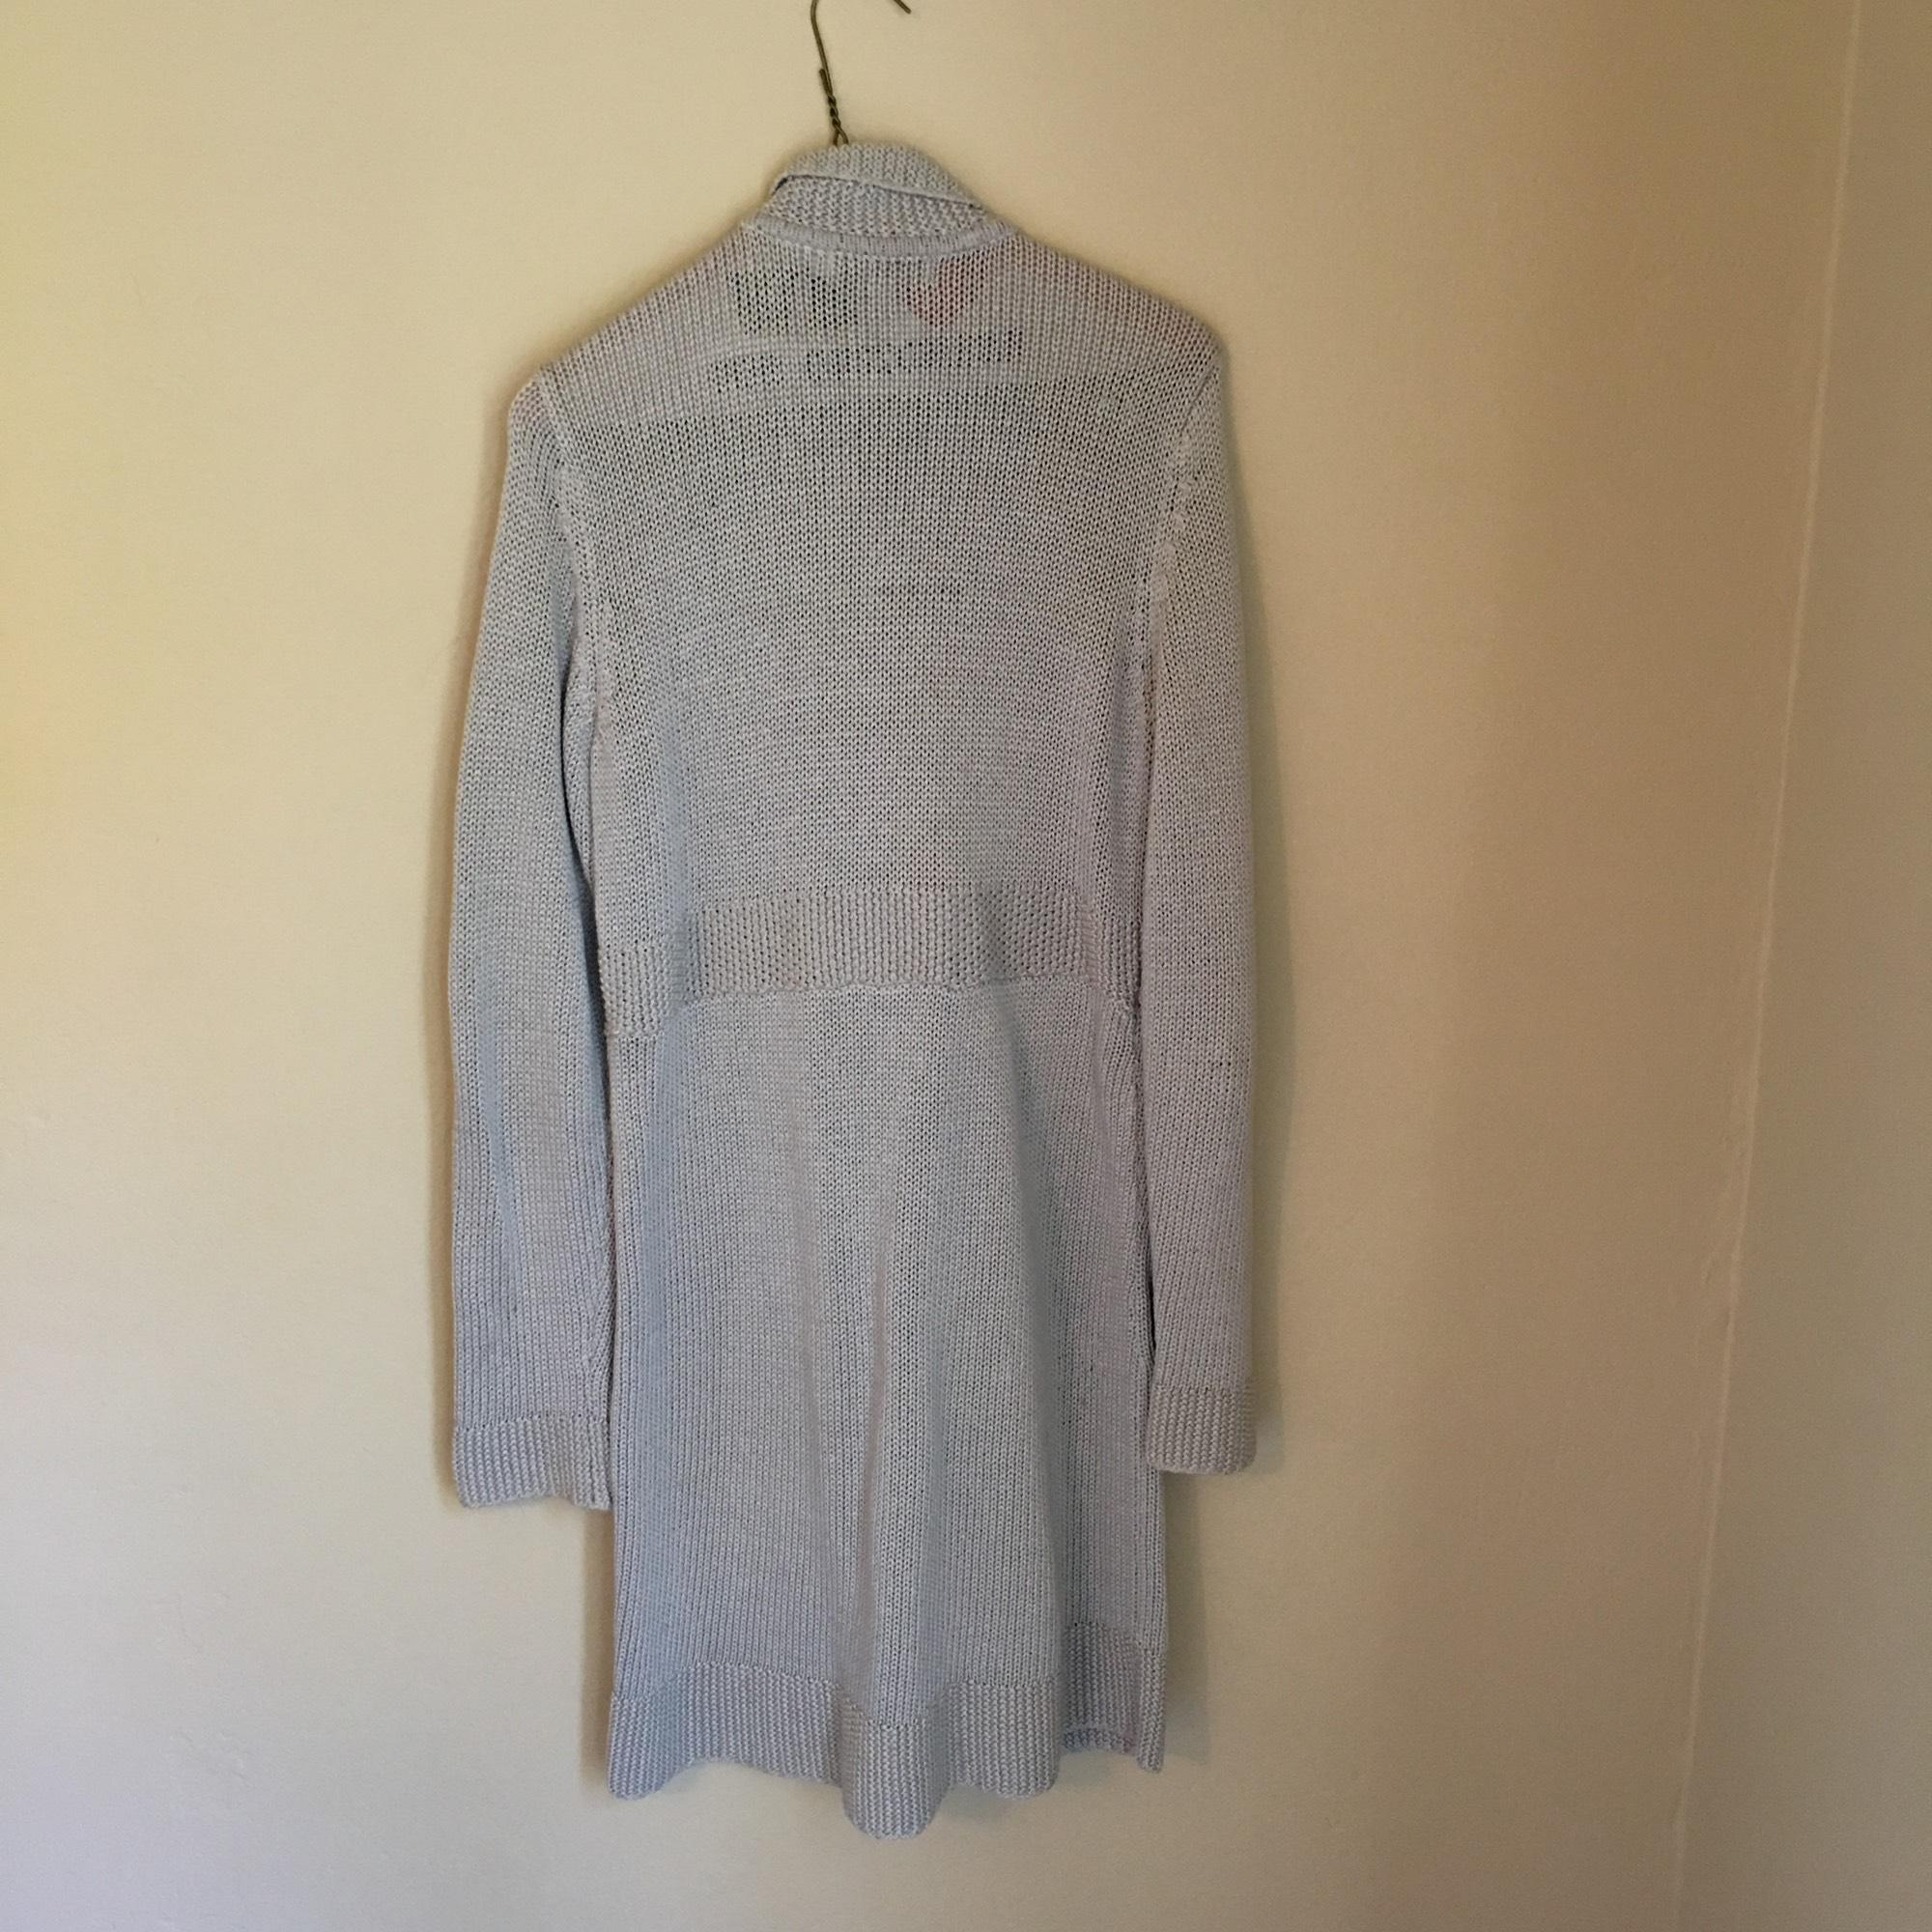 48a7052864 ... Boden Light Gray Coat-style Cotton Cardigan Size 10 Boden Cardigan Size  4 ...